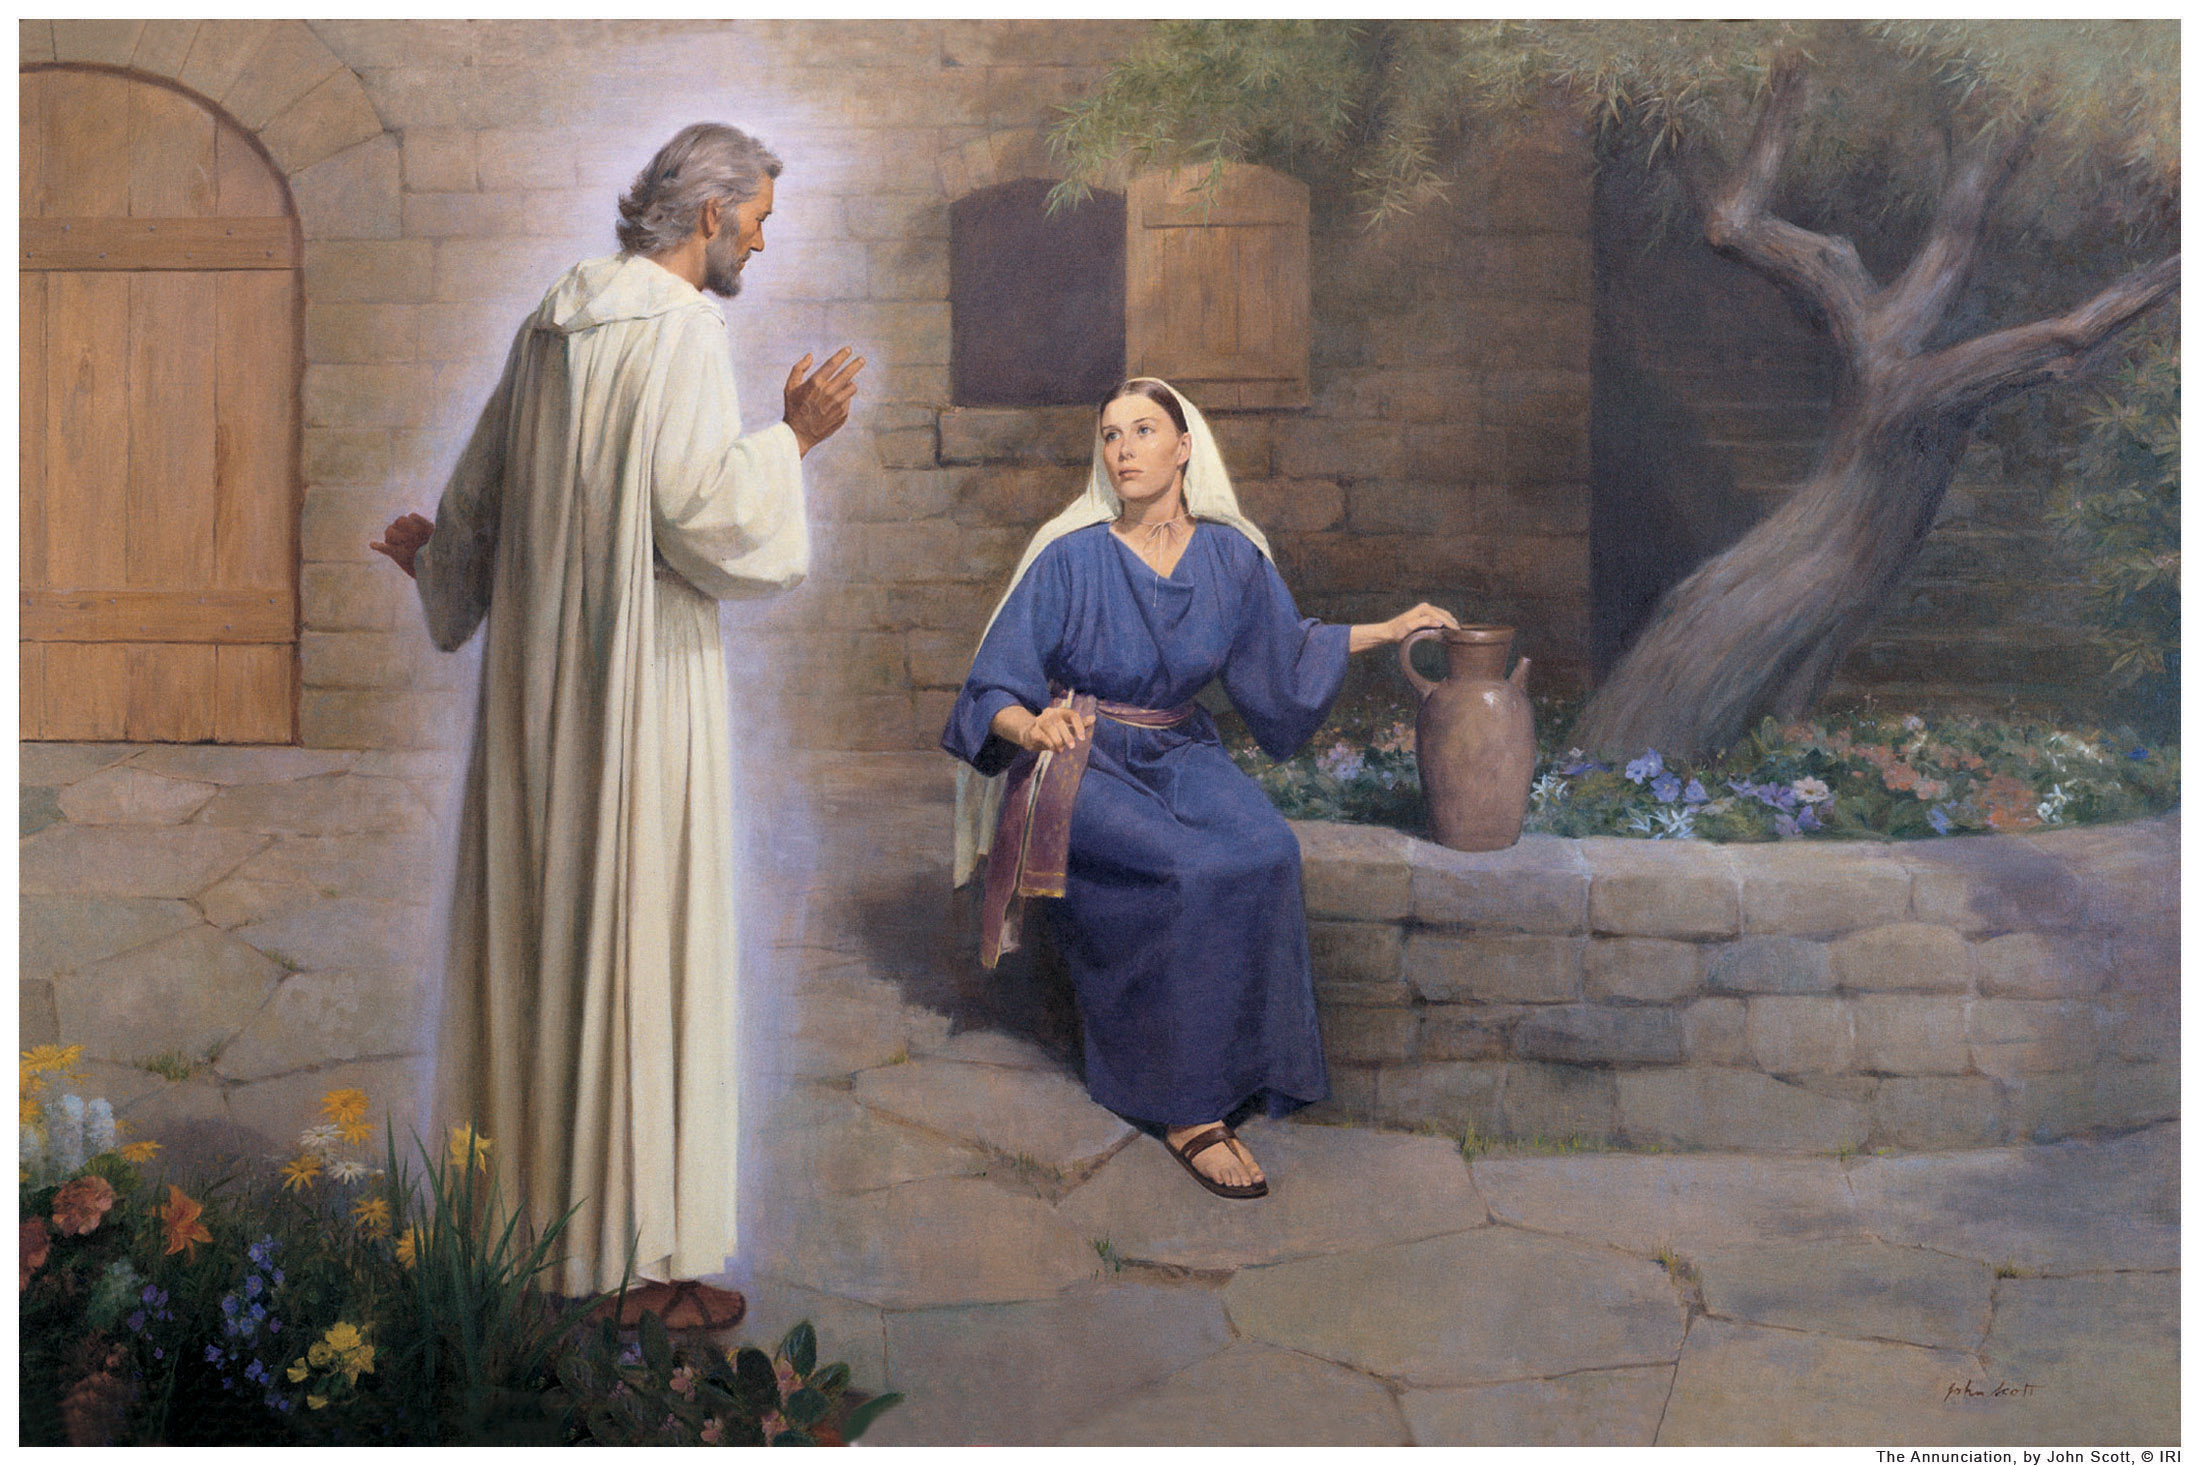 Angel talks to mary clipart jpg royalty free library Gabriel Speaks Again | If I Walked With Jesus jpg royalty free library